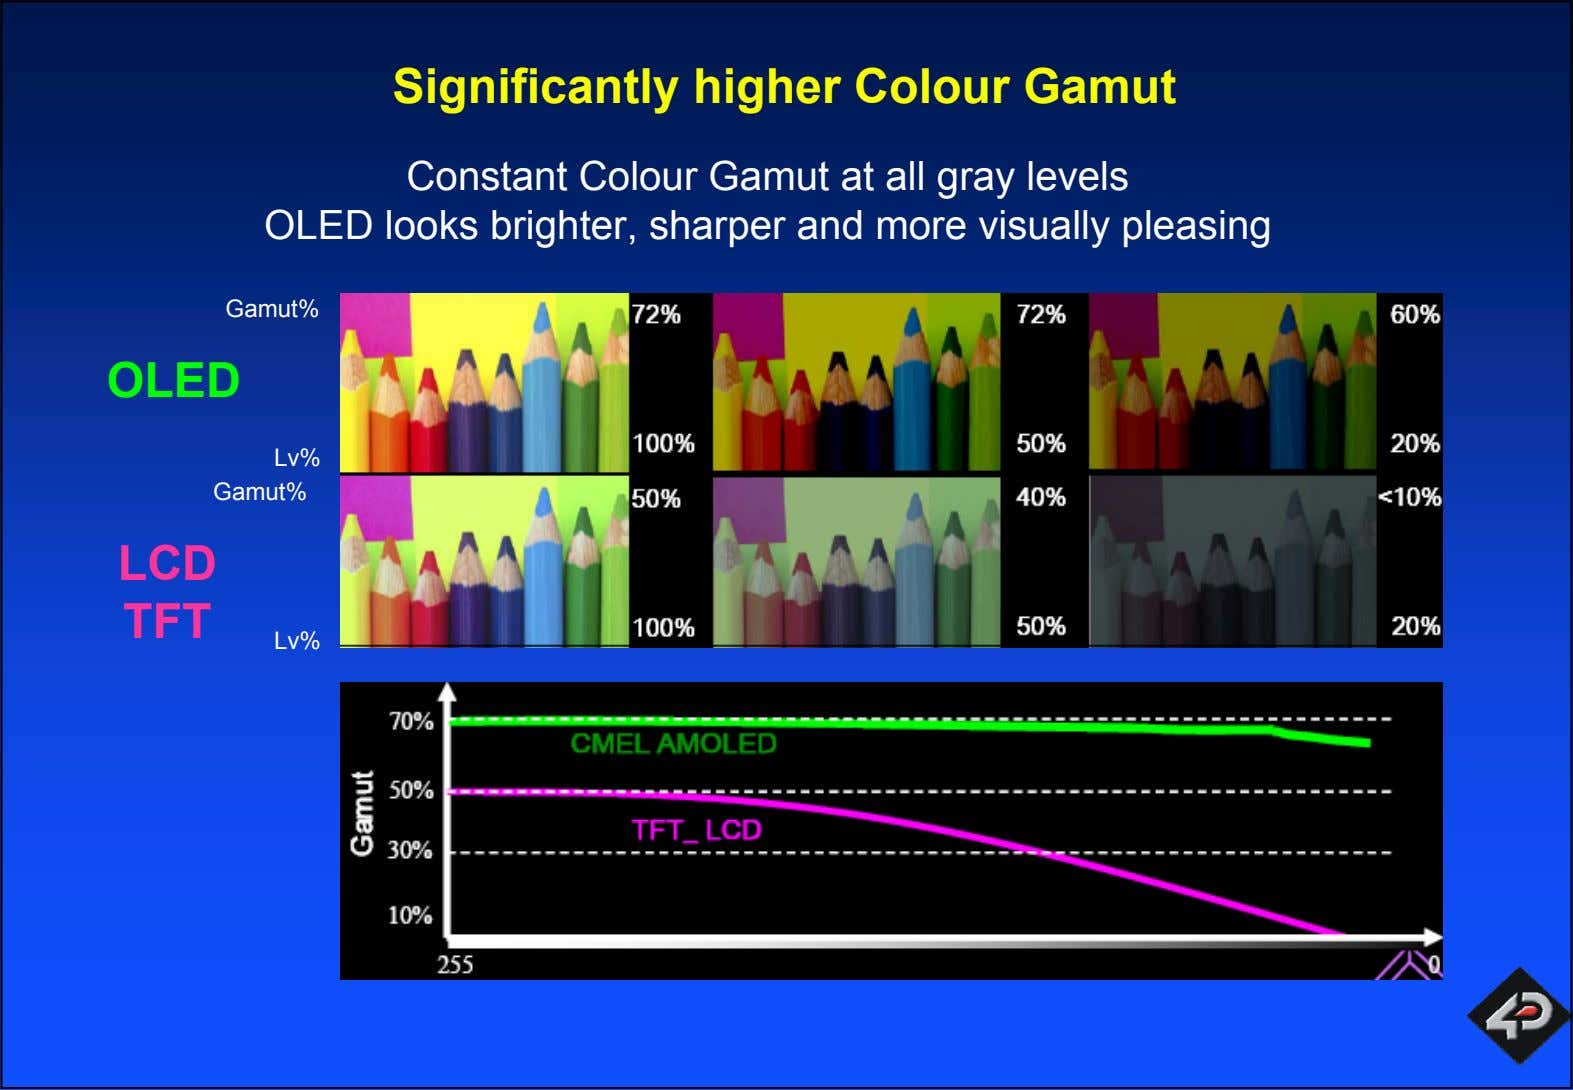 Significantly higher Colour Gamut Constant Colour Gamut at all gray levels OLED looks brighter, sharper